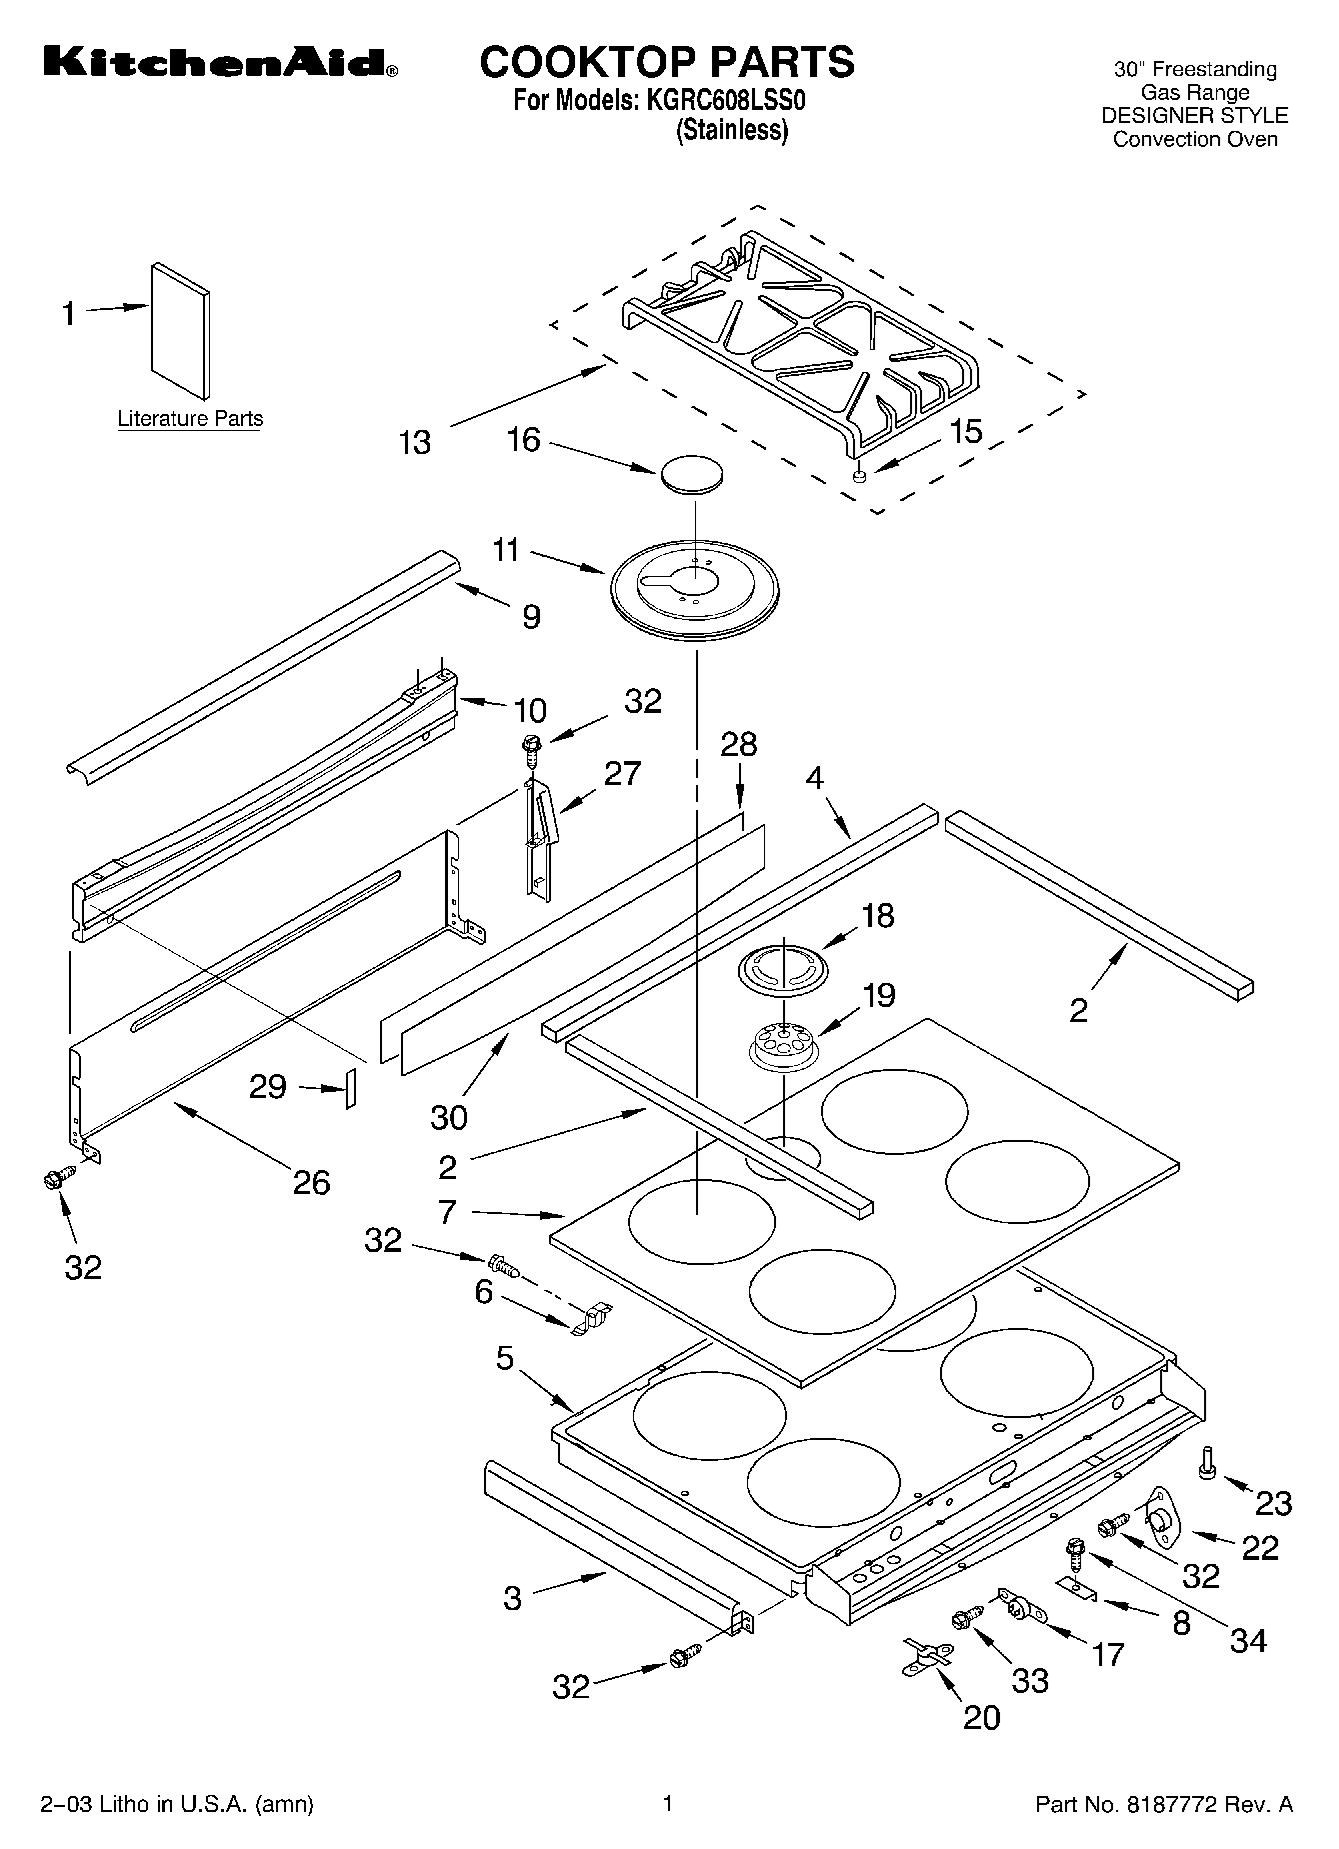 Stunning Kitchenaid Wiring Diagrams Images - Electrical and Wiring ...